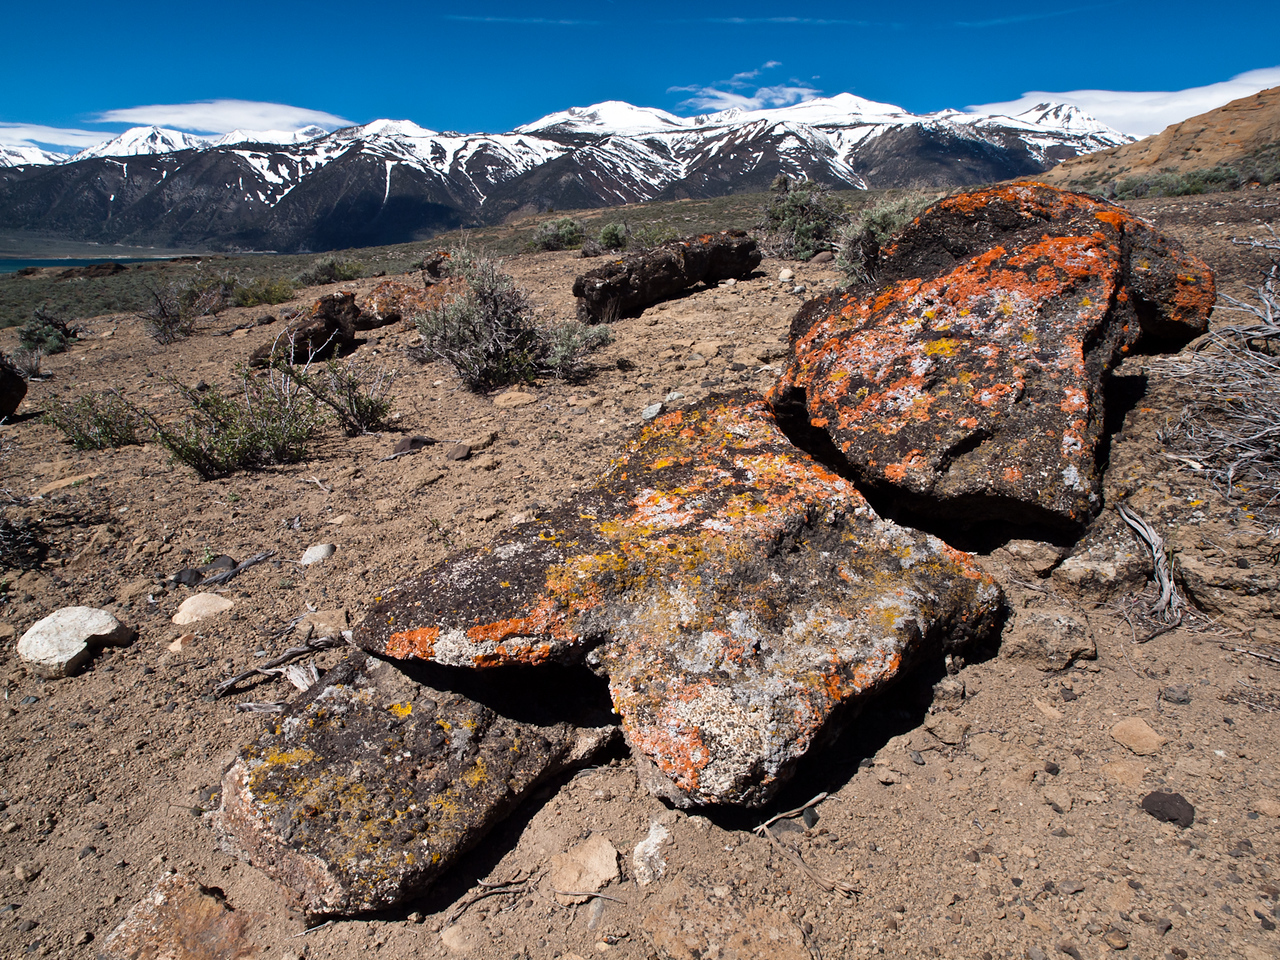 Cooled lava rock on the slopes of Black Point on Mono Lake.  Lichens make that vivid orange and yellow and I loved the color against the cool tones of the mountains and sky.